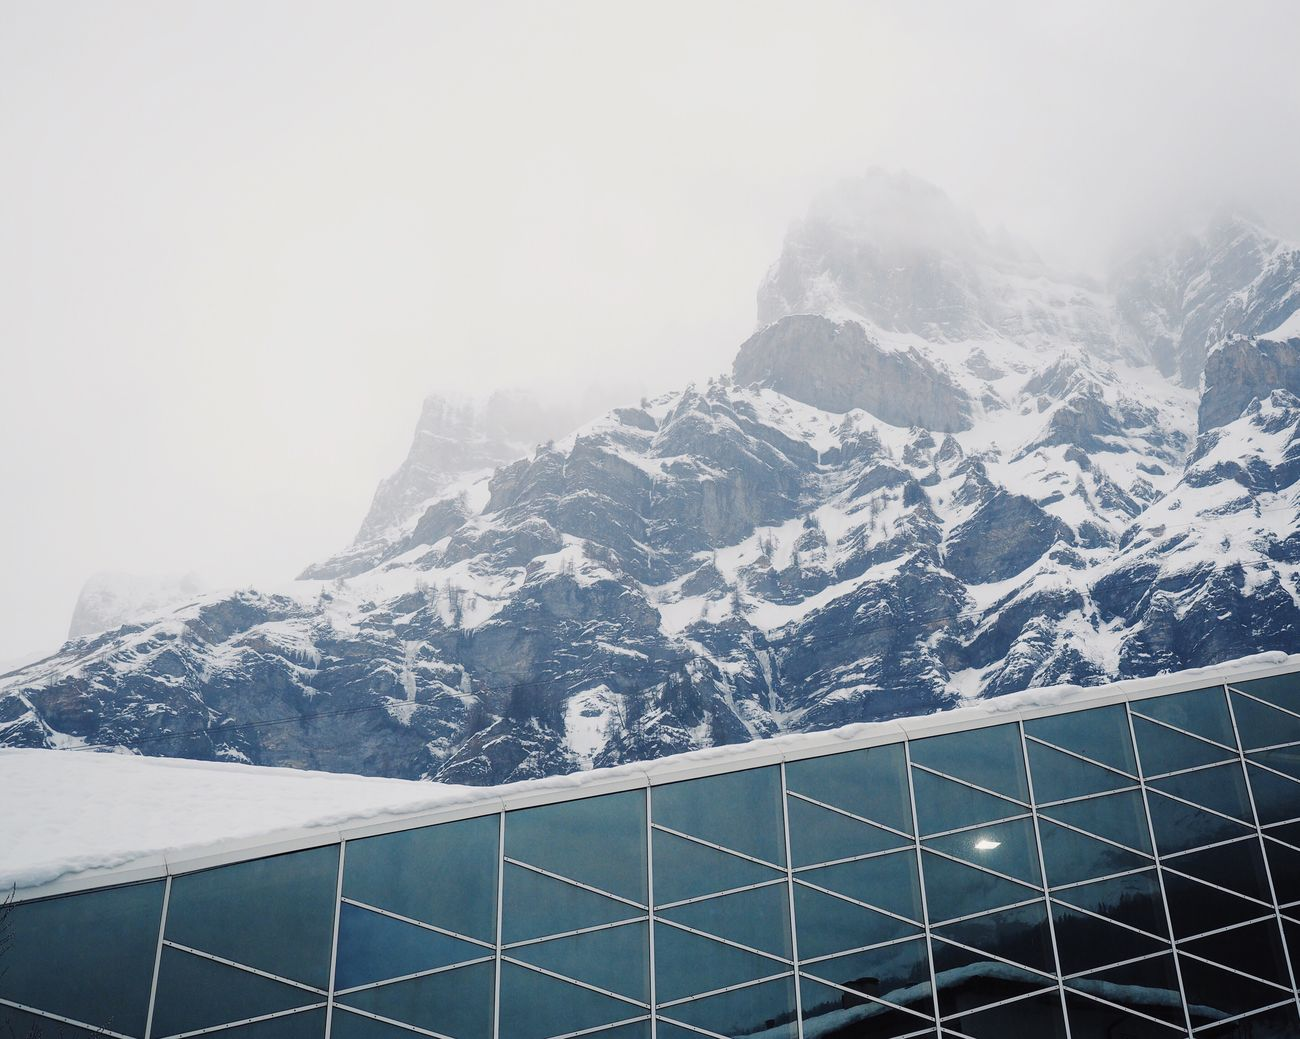 Snow Winter Mountain Cold Temperature No People Outdoors Day Architecture Contrast Reflection Foggy Morning Architecture_collection Building Exterior at Leukerbad Switzerland